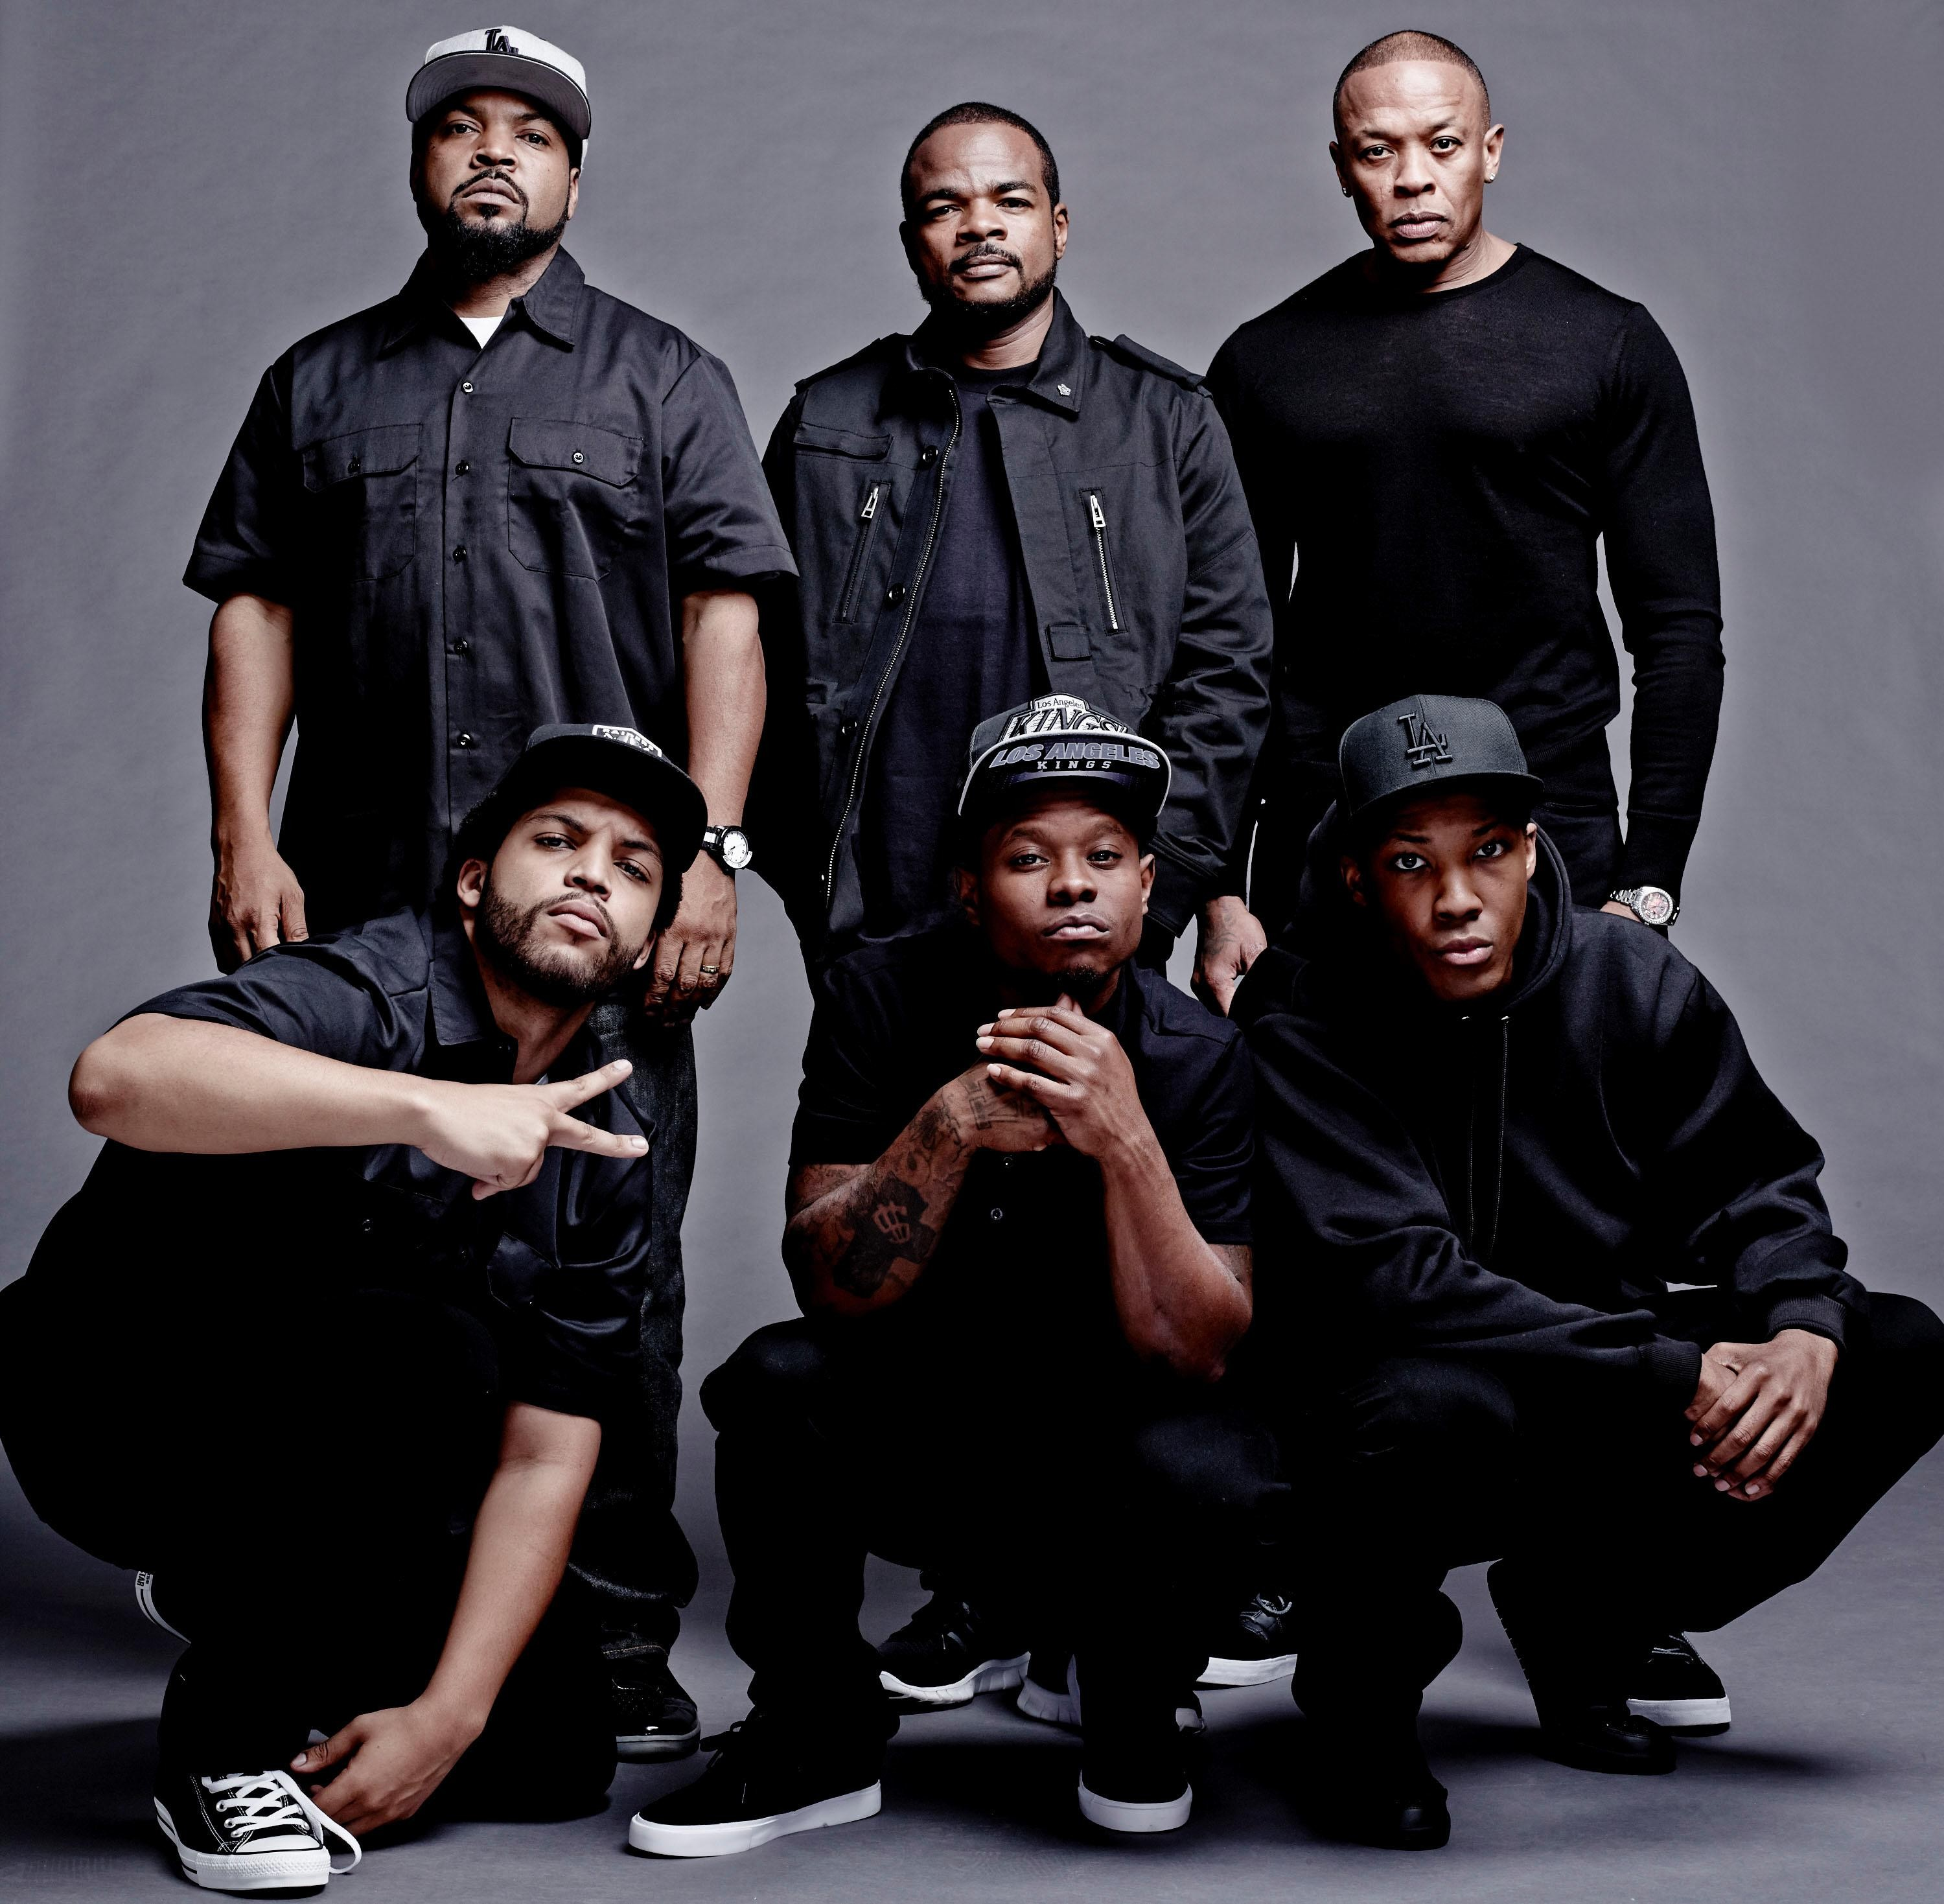 Universal Distances Itself from 'Straight Outta Compton' Casting Call